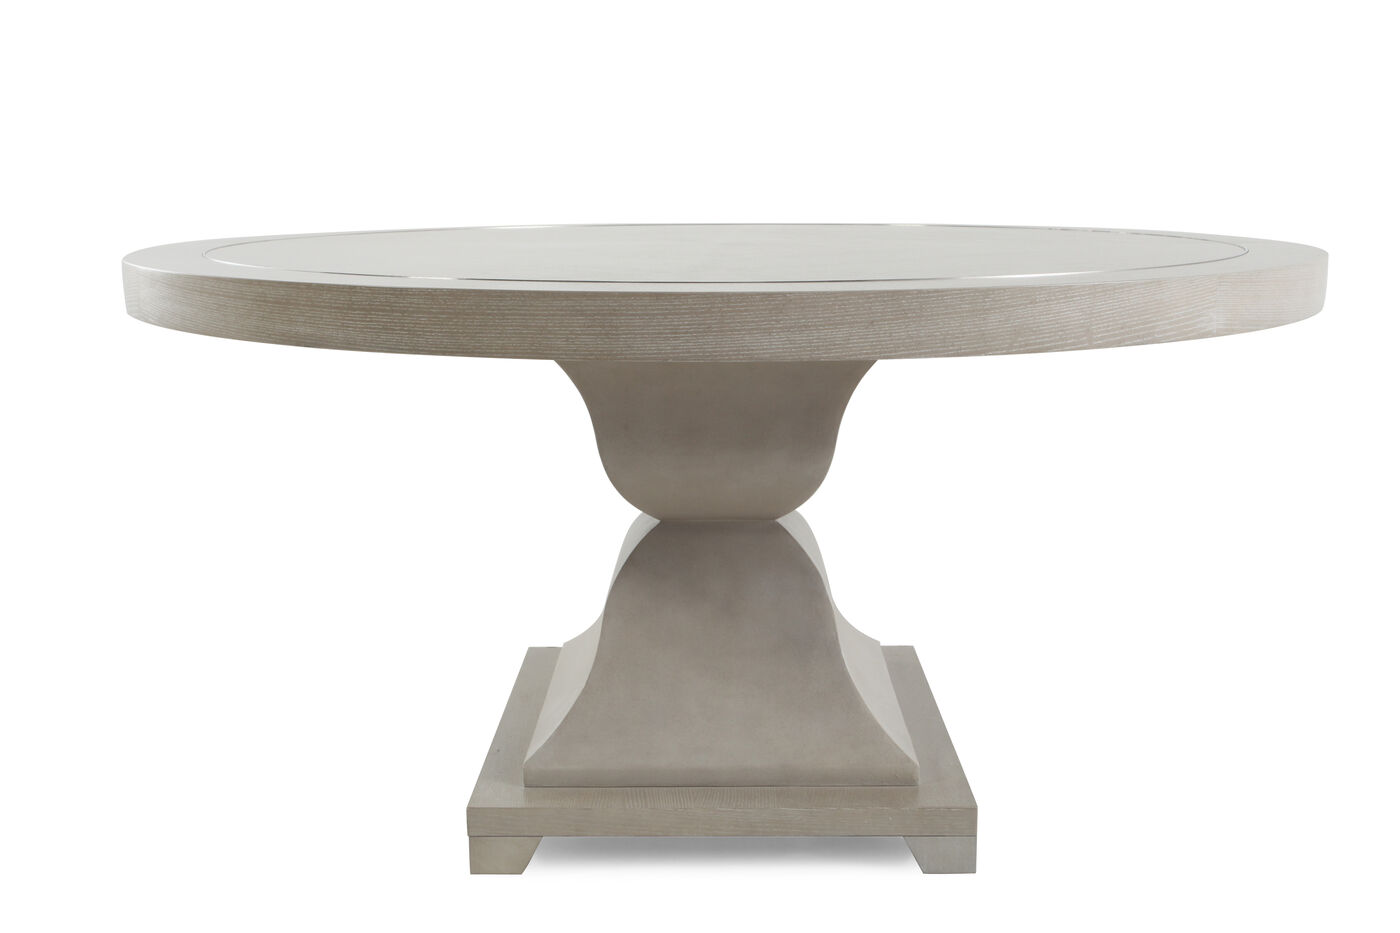 Metropolitan Round Dining Table With Leather Patterns In - Round pedestal dining table gray